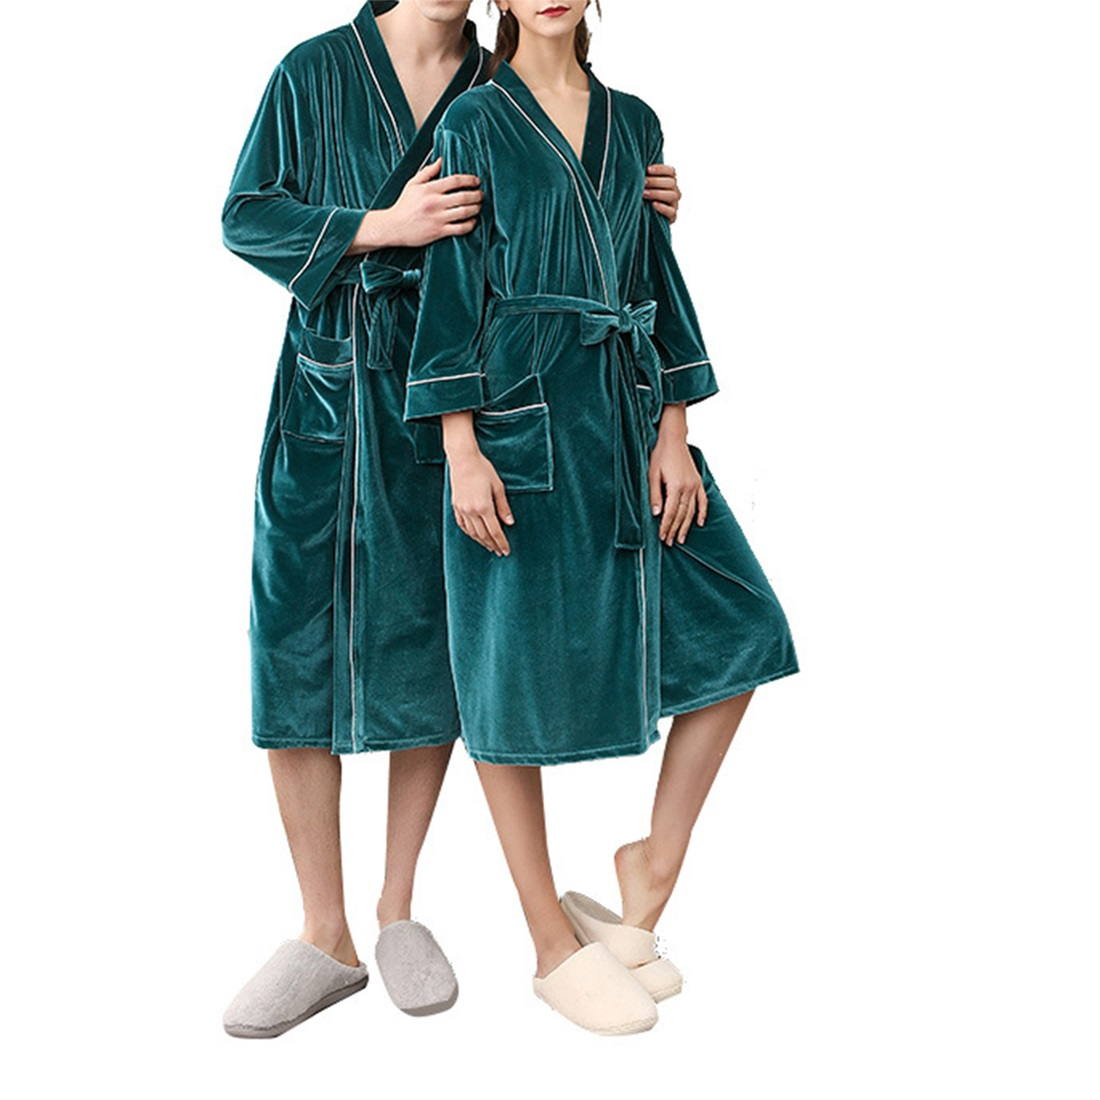 2019 Autumn And Winter Stitching Nightgown Long Section Men And Women Couple Pajamas New Bathroom Bathrobe Fashion Couple Robes